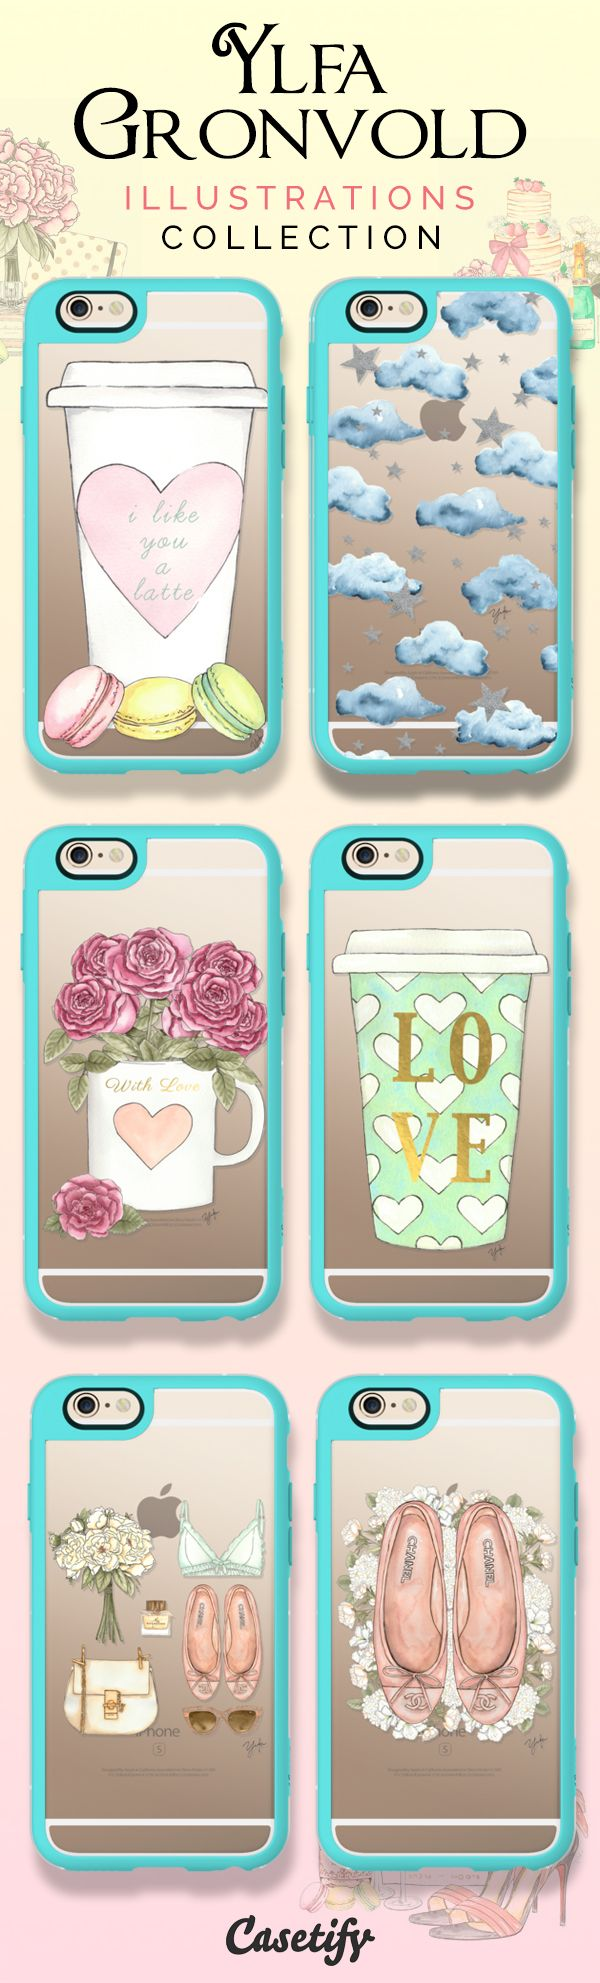 Feminine and Sweet. Shop these cute cases by @ylfa_gronvold on our website now! https://www.casetify.com/ylfagronvoldstudio/collection | @casetify